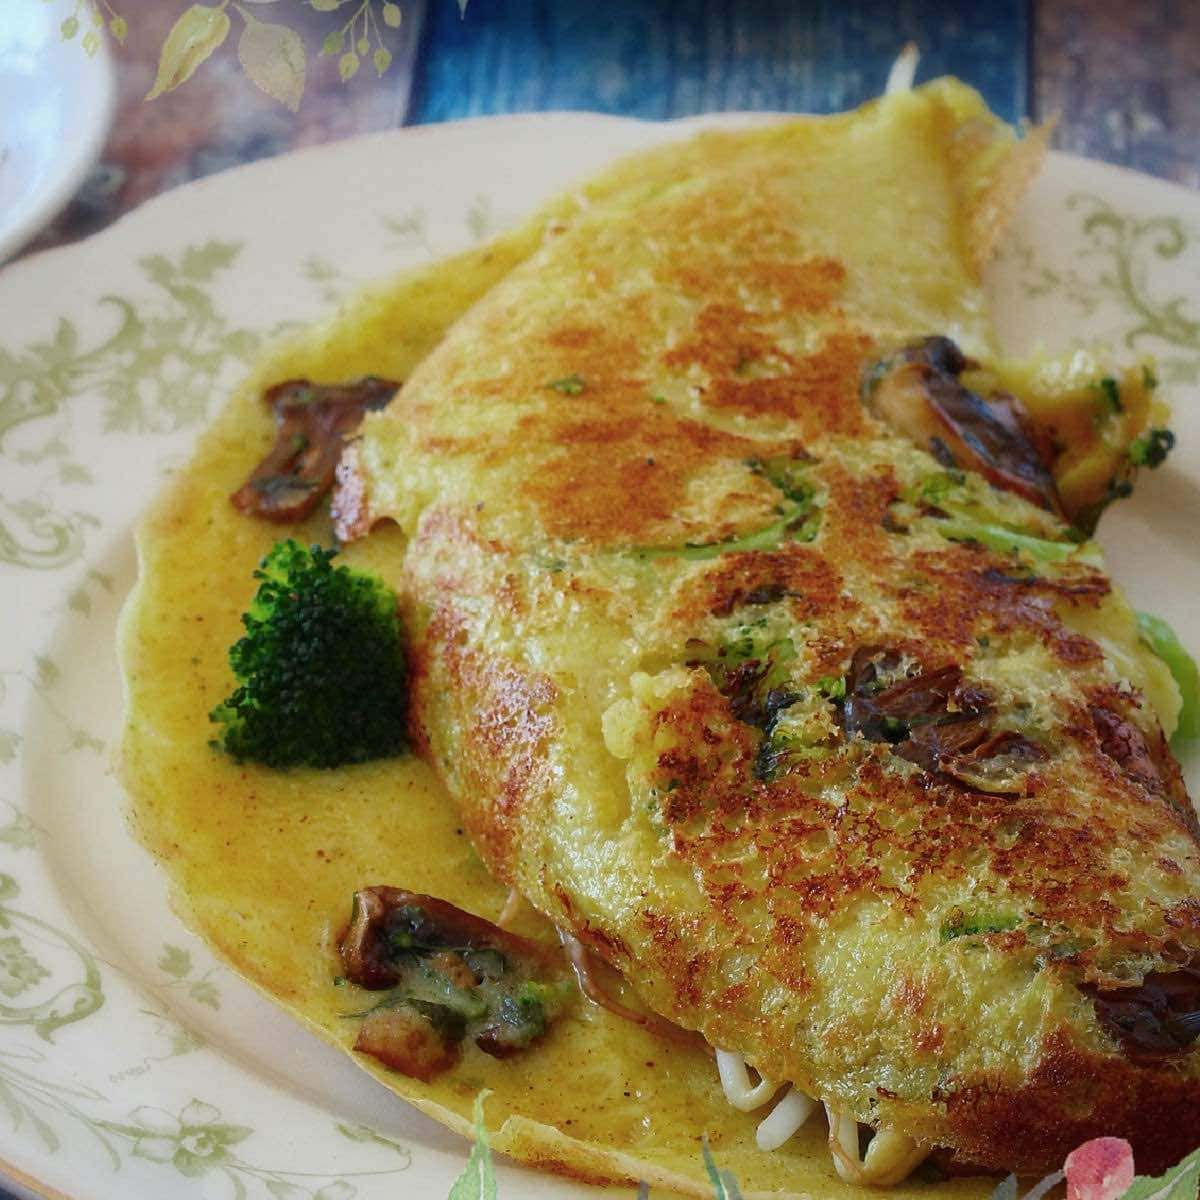 Plant-based breakfast ideas featuring a savory vegan crepe with vegetables.